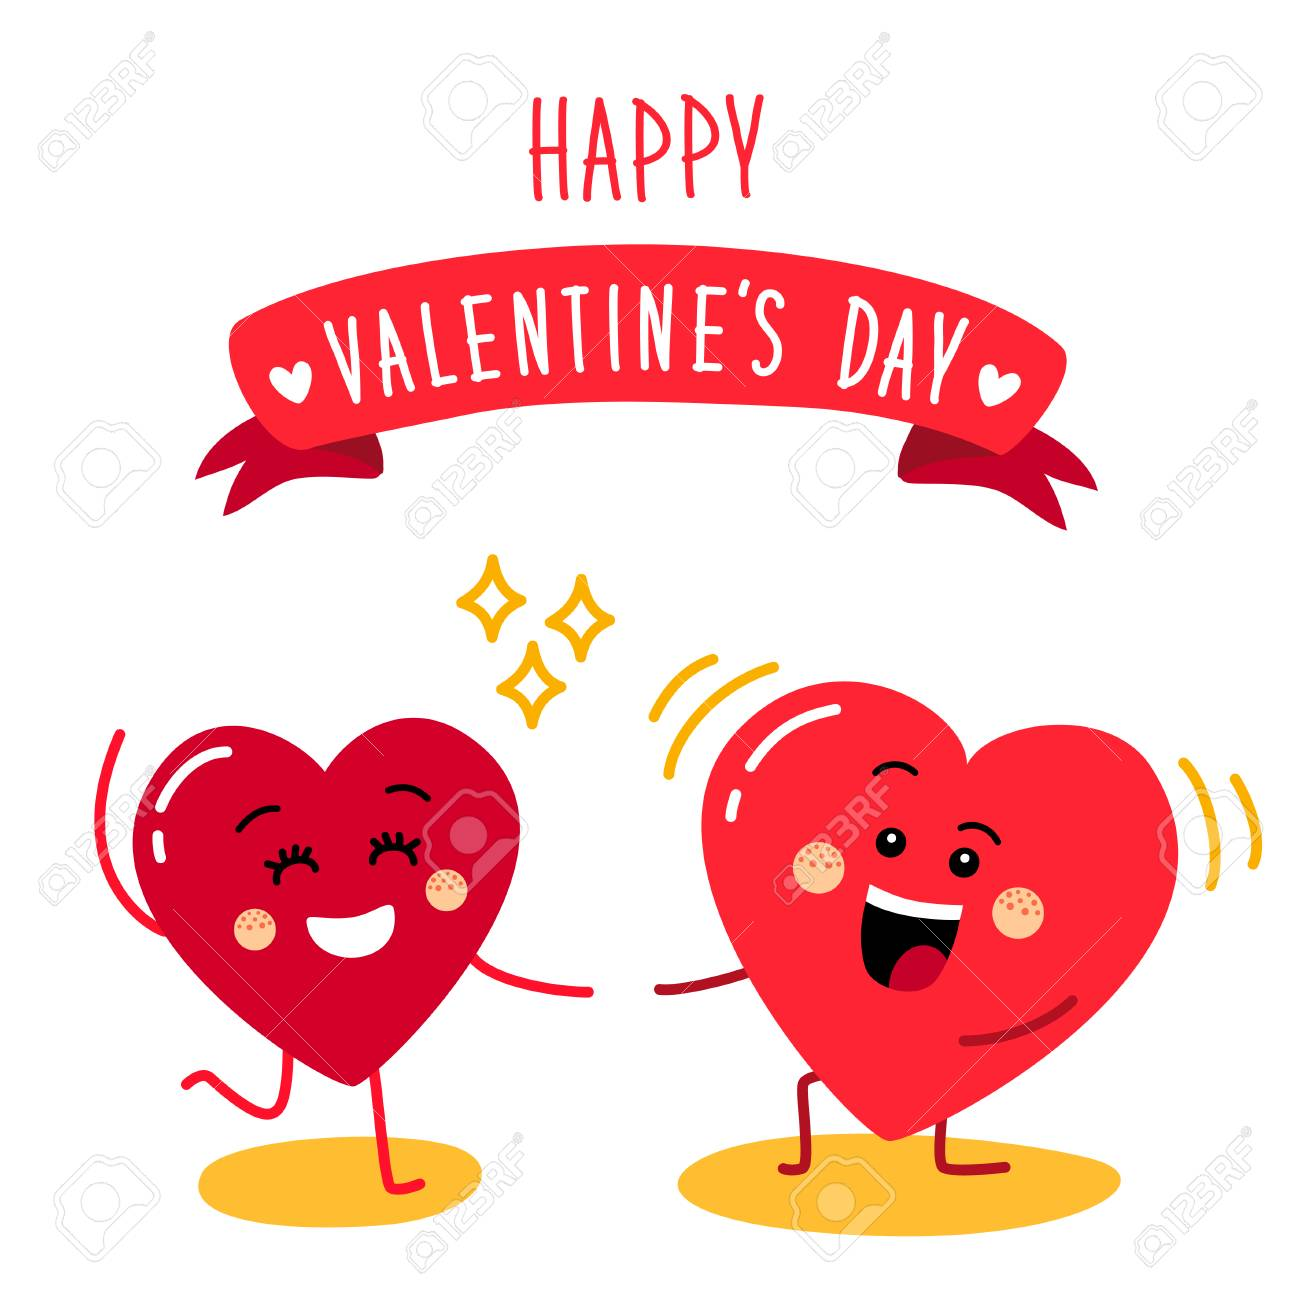 Cute Holiday Valentines Day Card With Funny Cartoon Character Royalty Free Cliparts Vectors And Stock Illustration Image 92276422